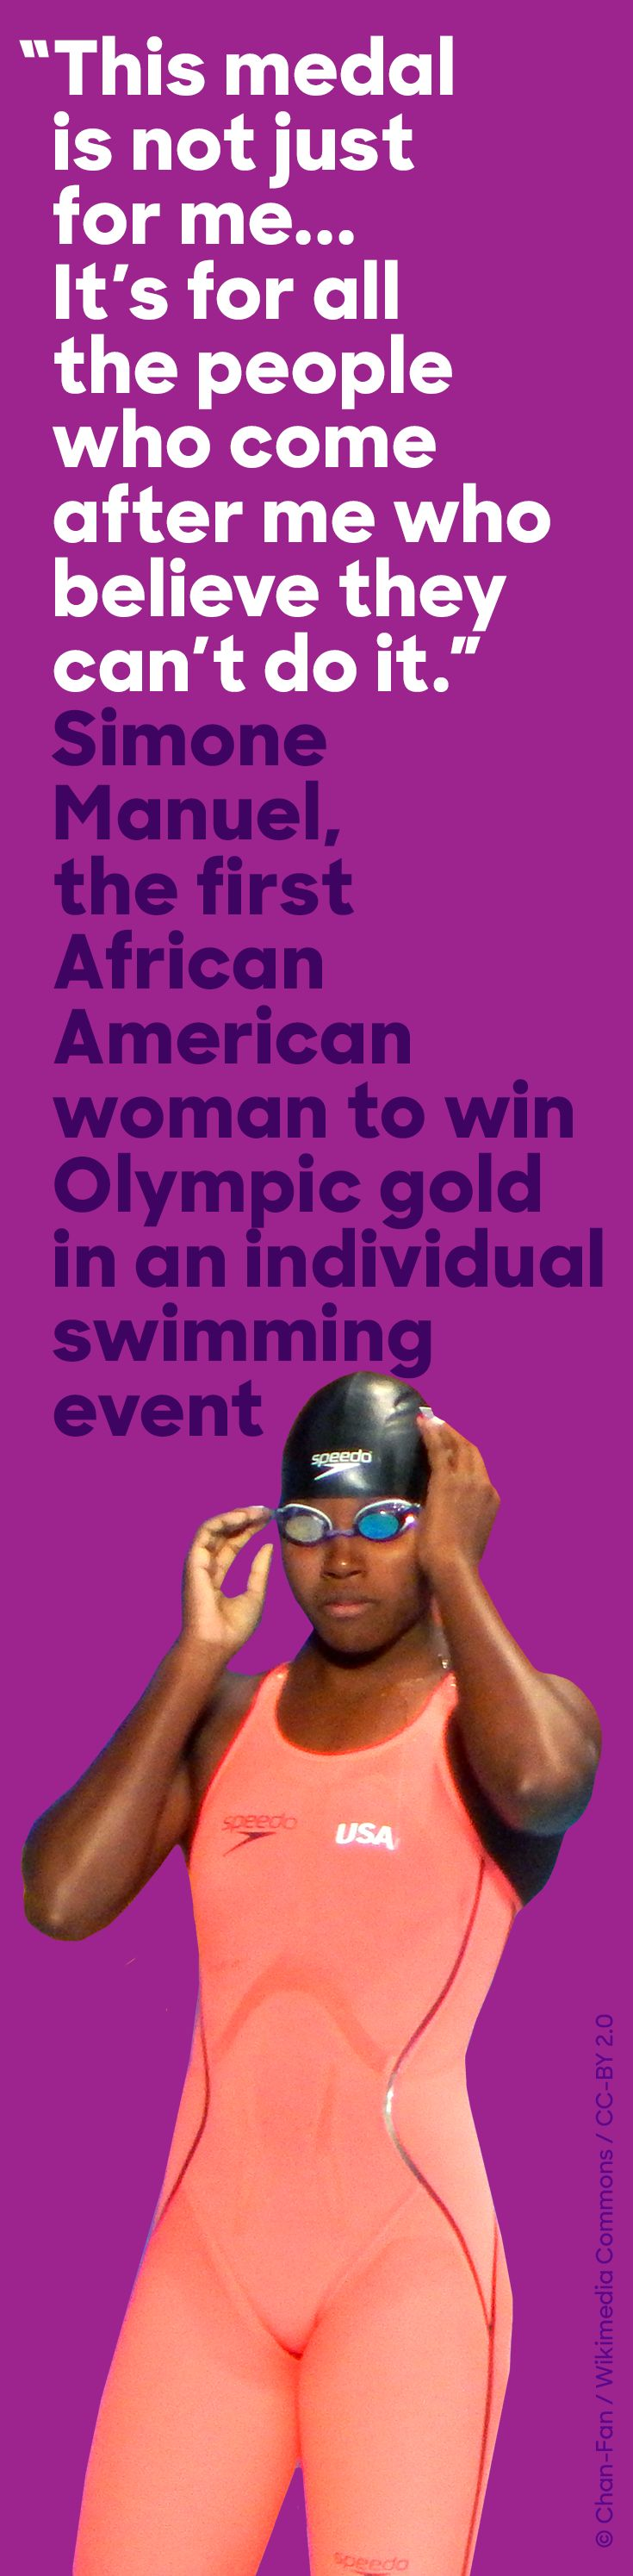 In Rio, U.S. Olympic swimmer Simone Manuel won gold and made history.